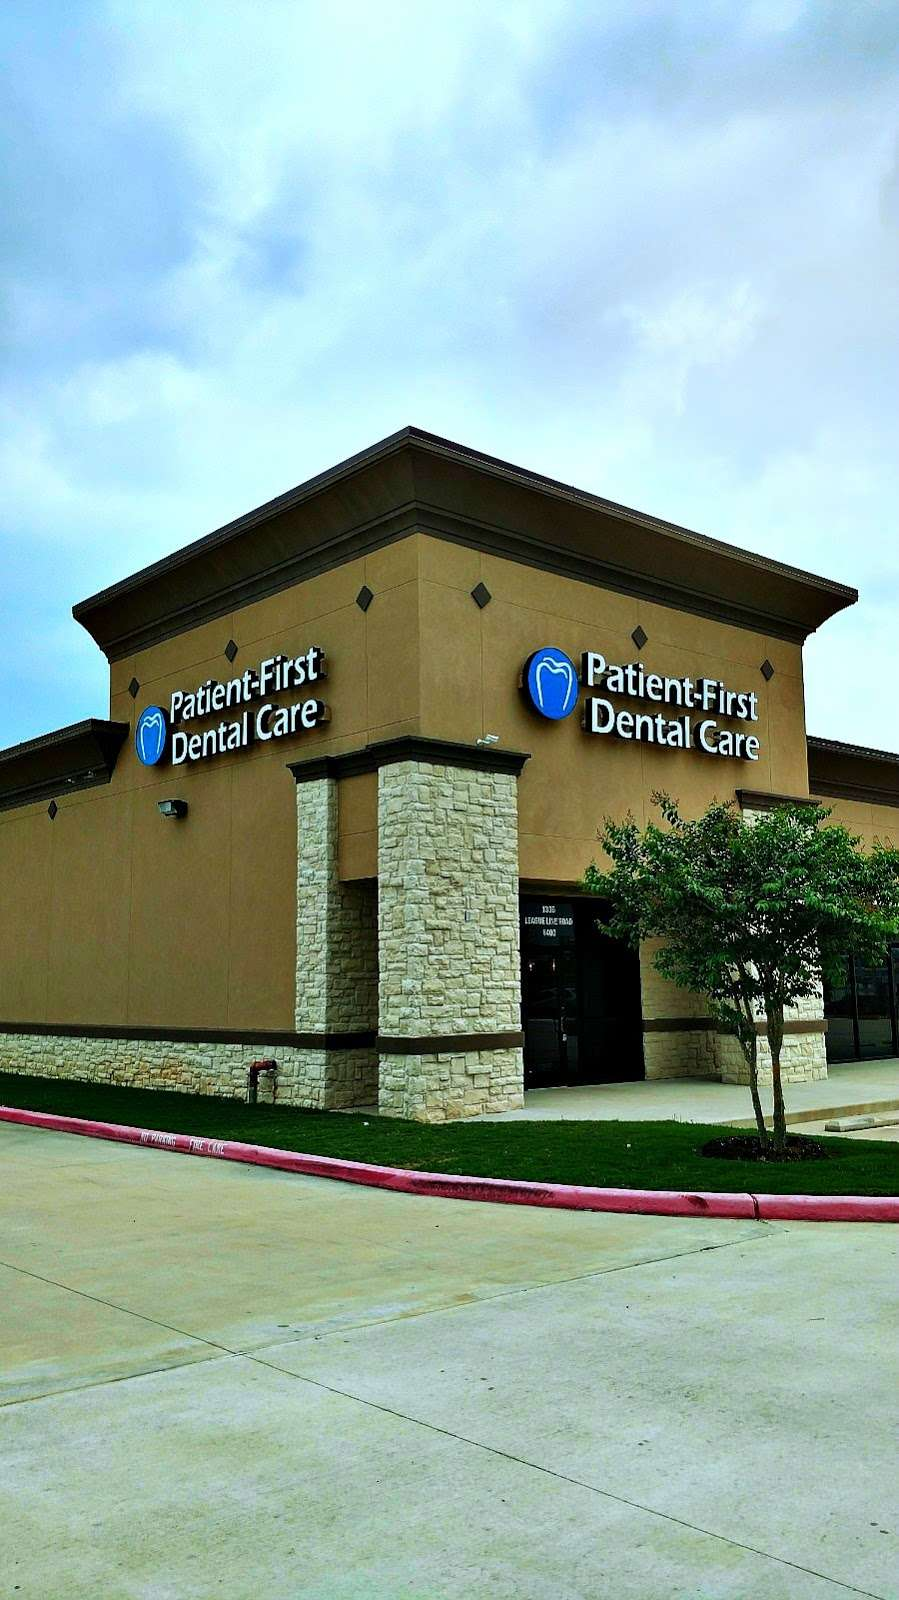 Patient-First Dental Care - dentist  | Photo 3 of 10 | Address: 1336 League Line Rd #400, Conroe, TX 77304, USA | Phone: (936) 856-9969